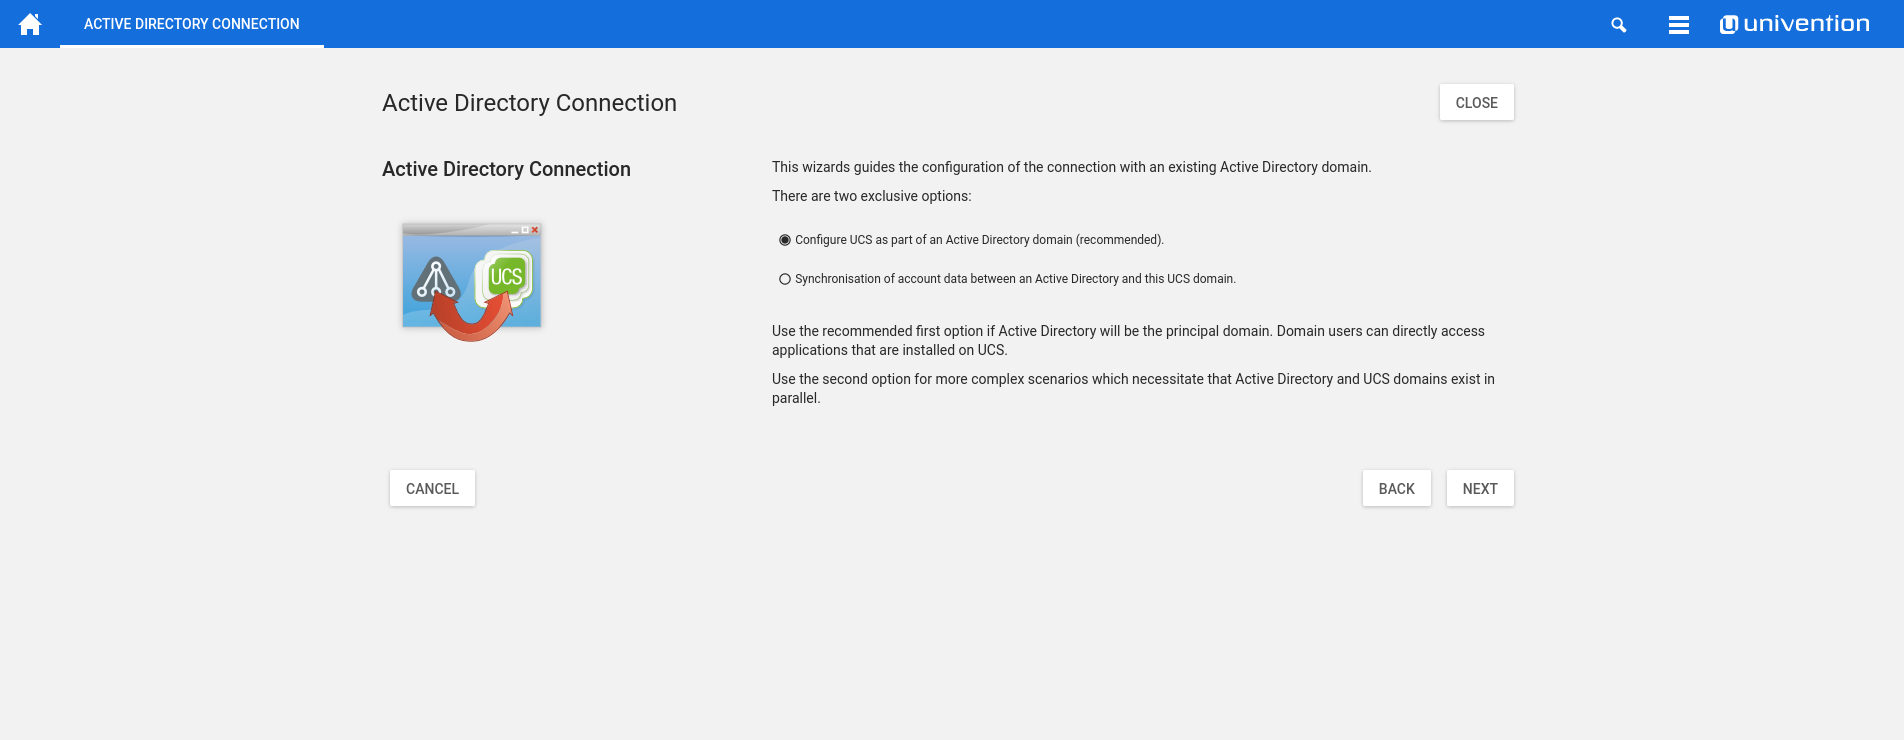 Univention Corporate Server Demo -  Active Directory Connection Tool